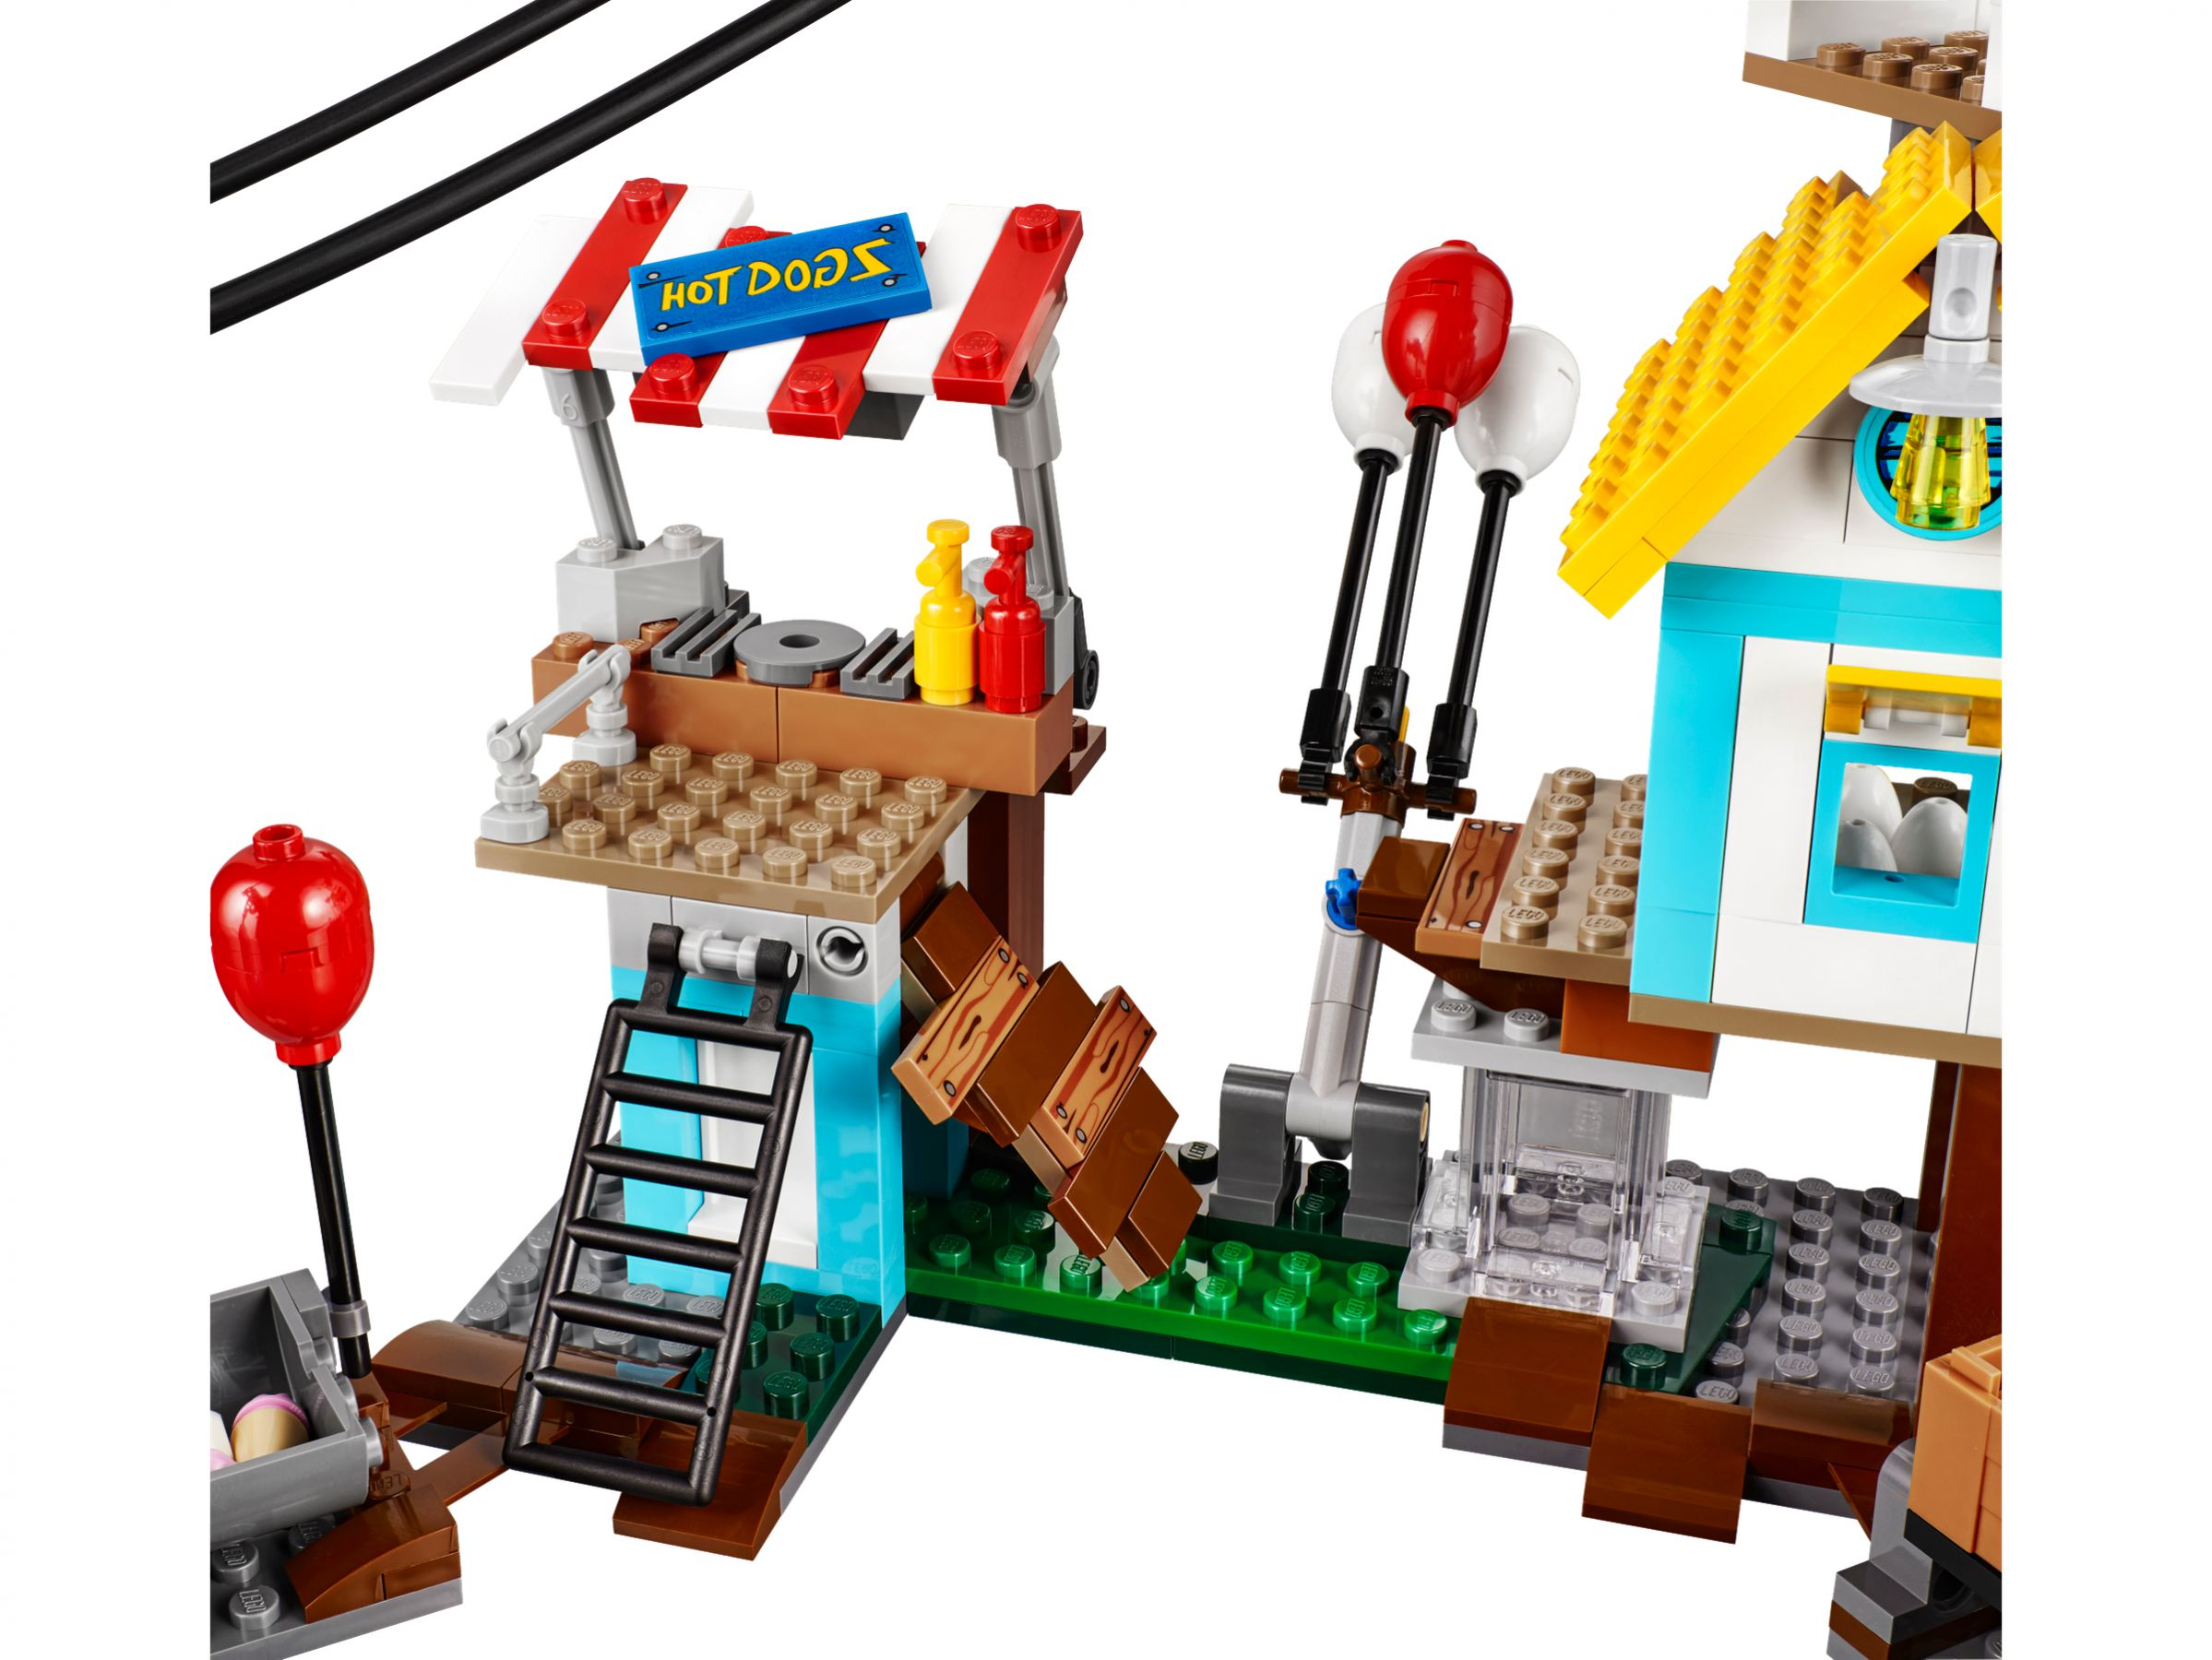 LEGO Angry Birds 75824 Pig City Teardown LEGO_75824_alt3.jpg